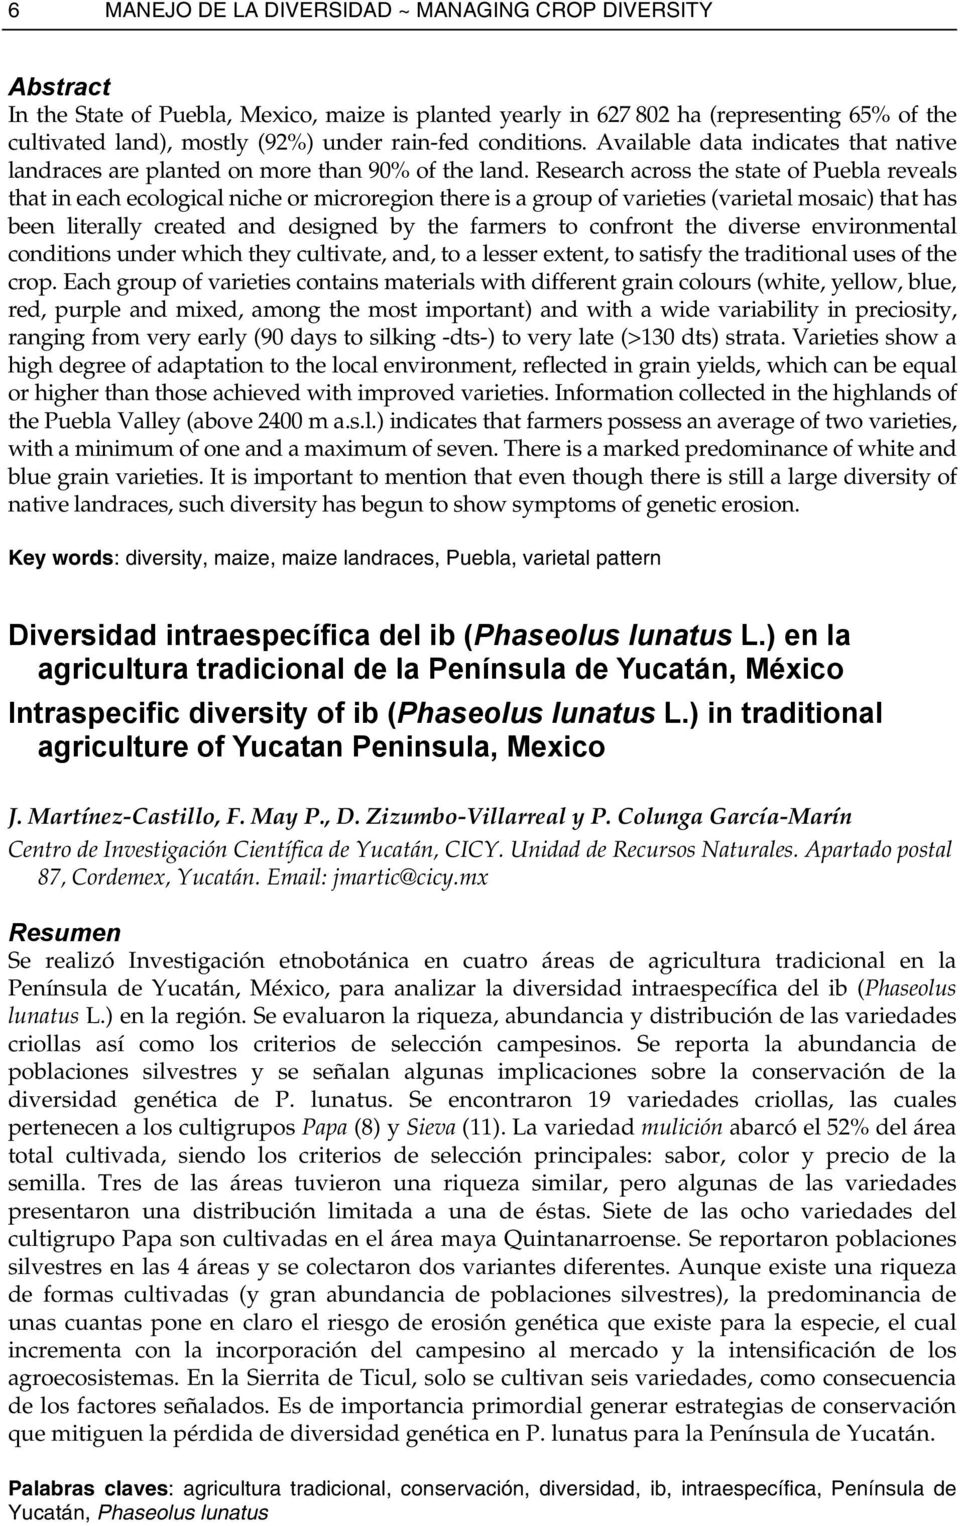 Research across the state of Puebla reveals that in each ecological niche or microregion there is a group of varieties (varietal mosaic) that has been literally created and designed by the farmers to